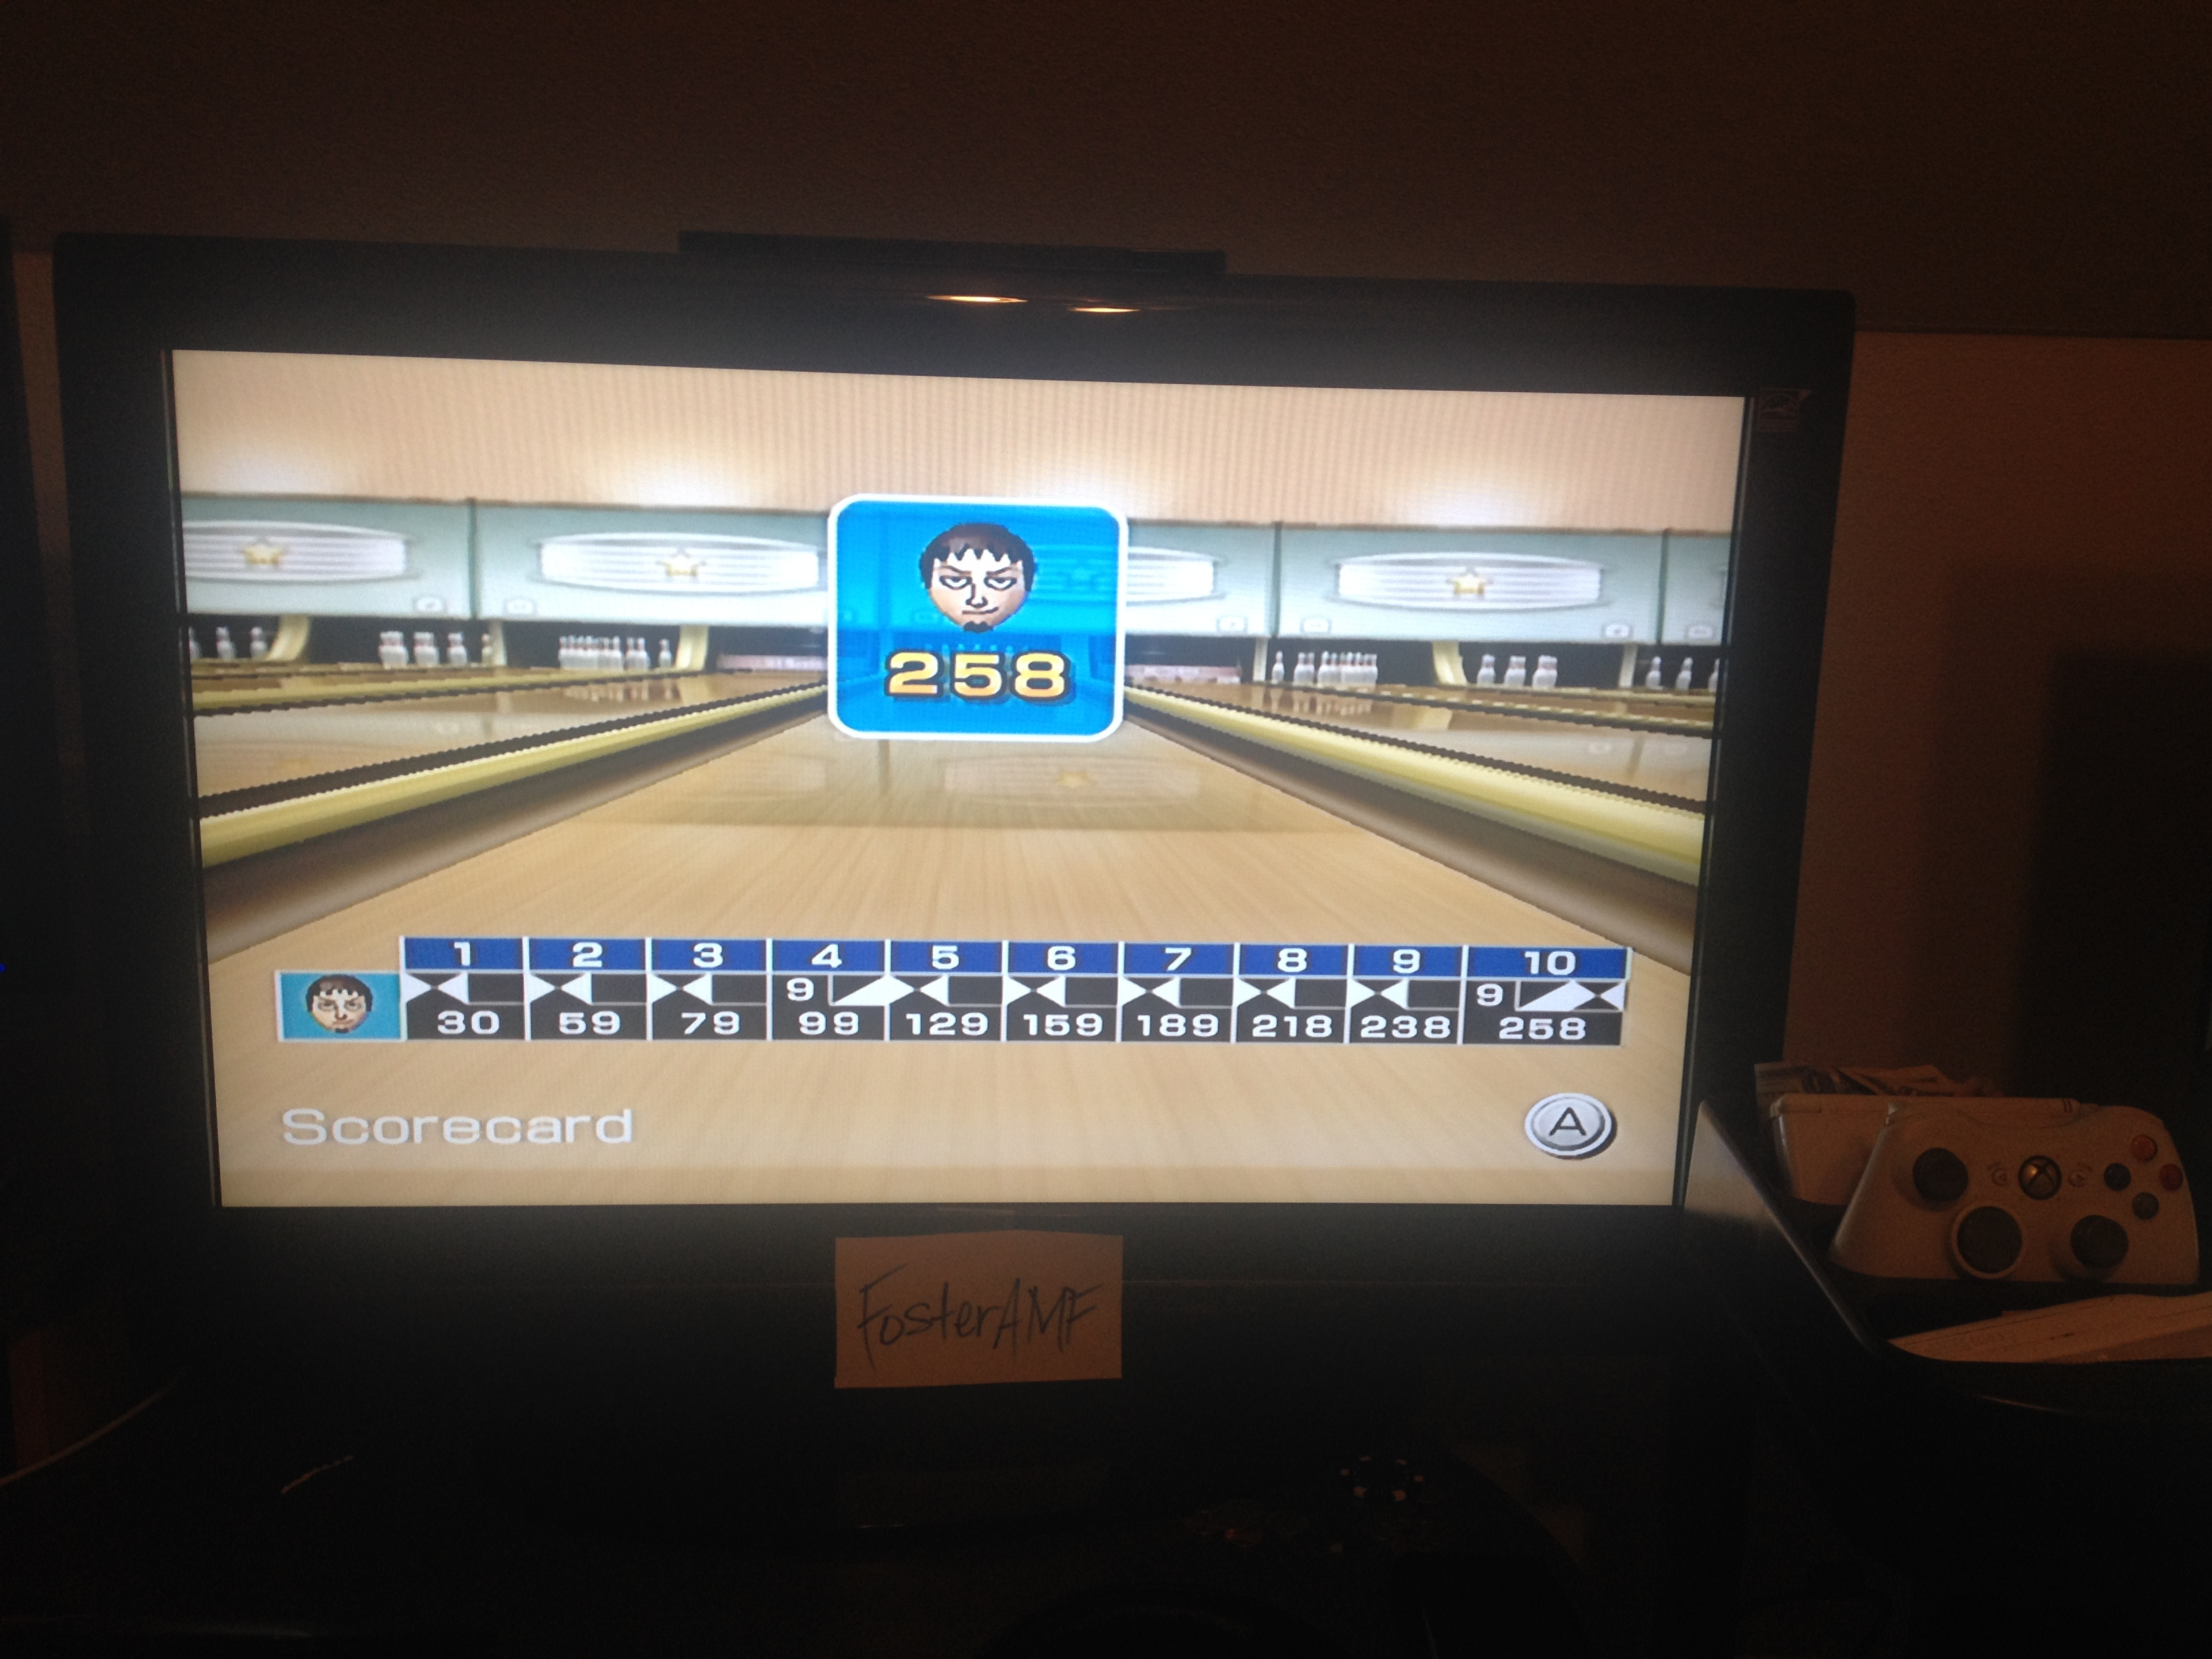 FosterAMF: Wii Sports: Bowling [Game Score] (Wii) 258 points on 2014-05-13 00:37:10